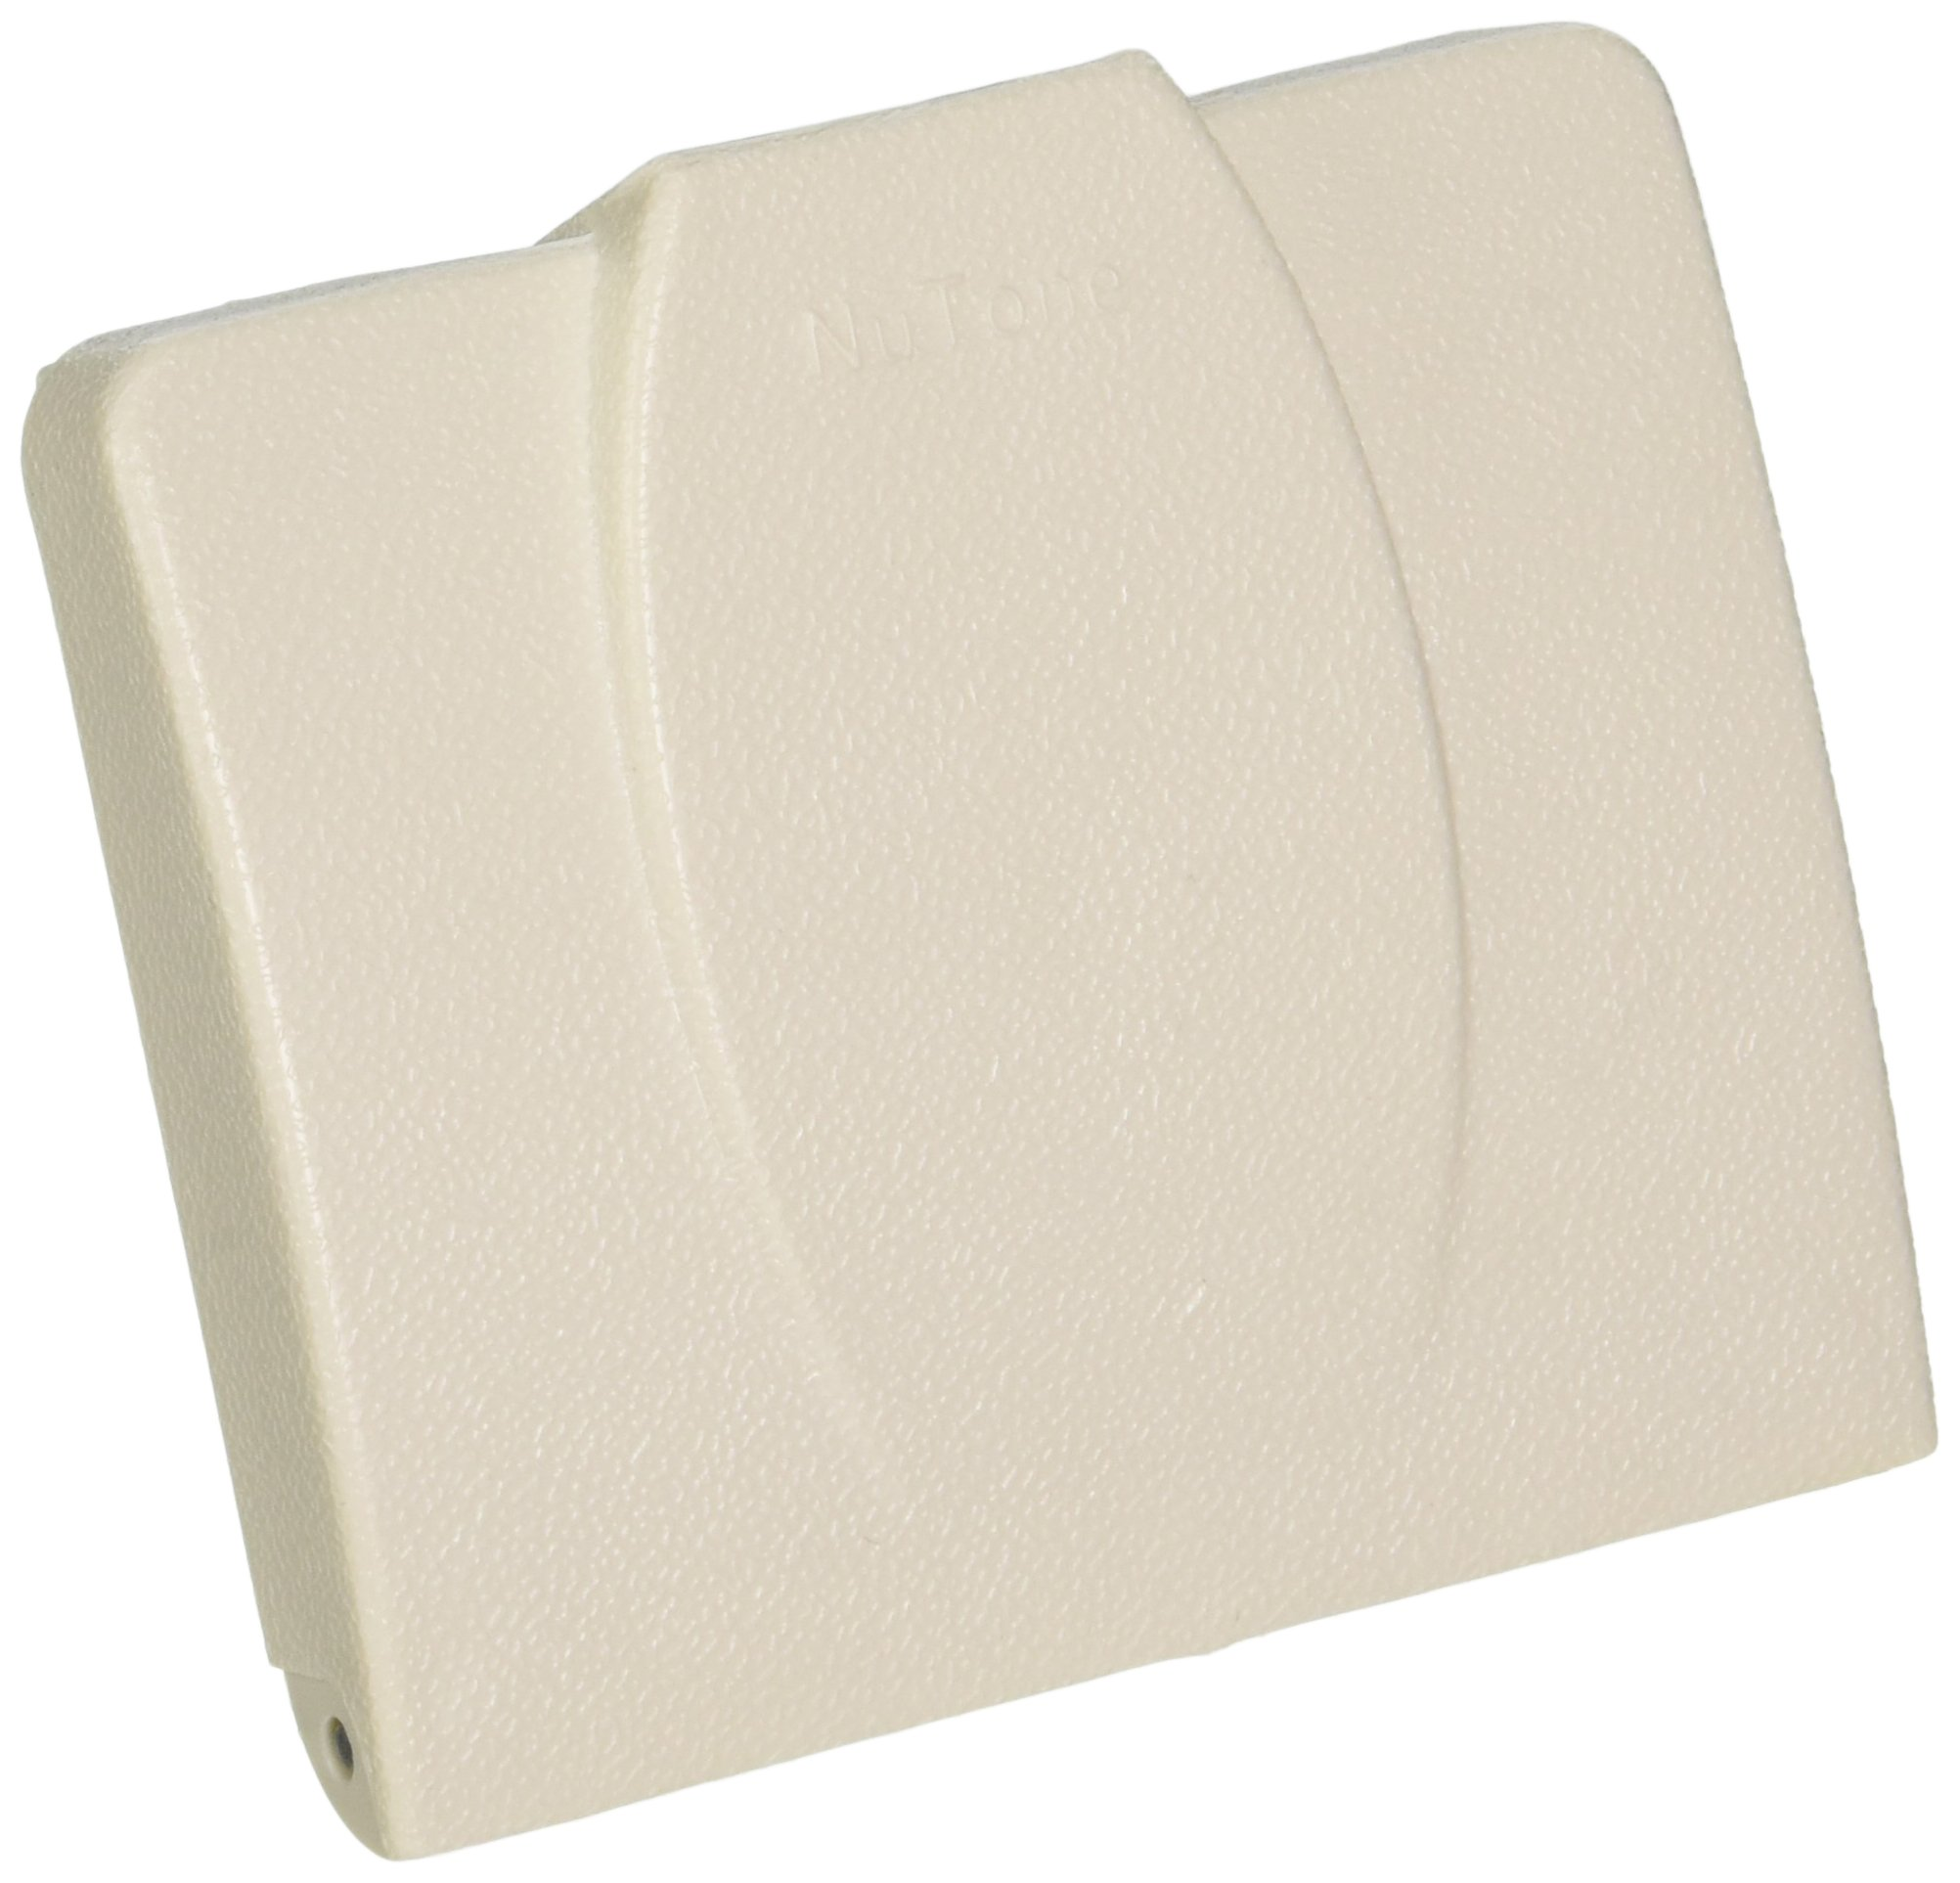 Nutone 360W Central Vacuum Wall Inlet White